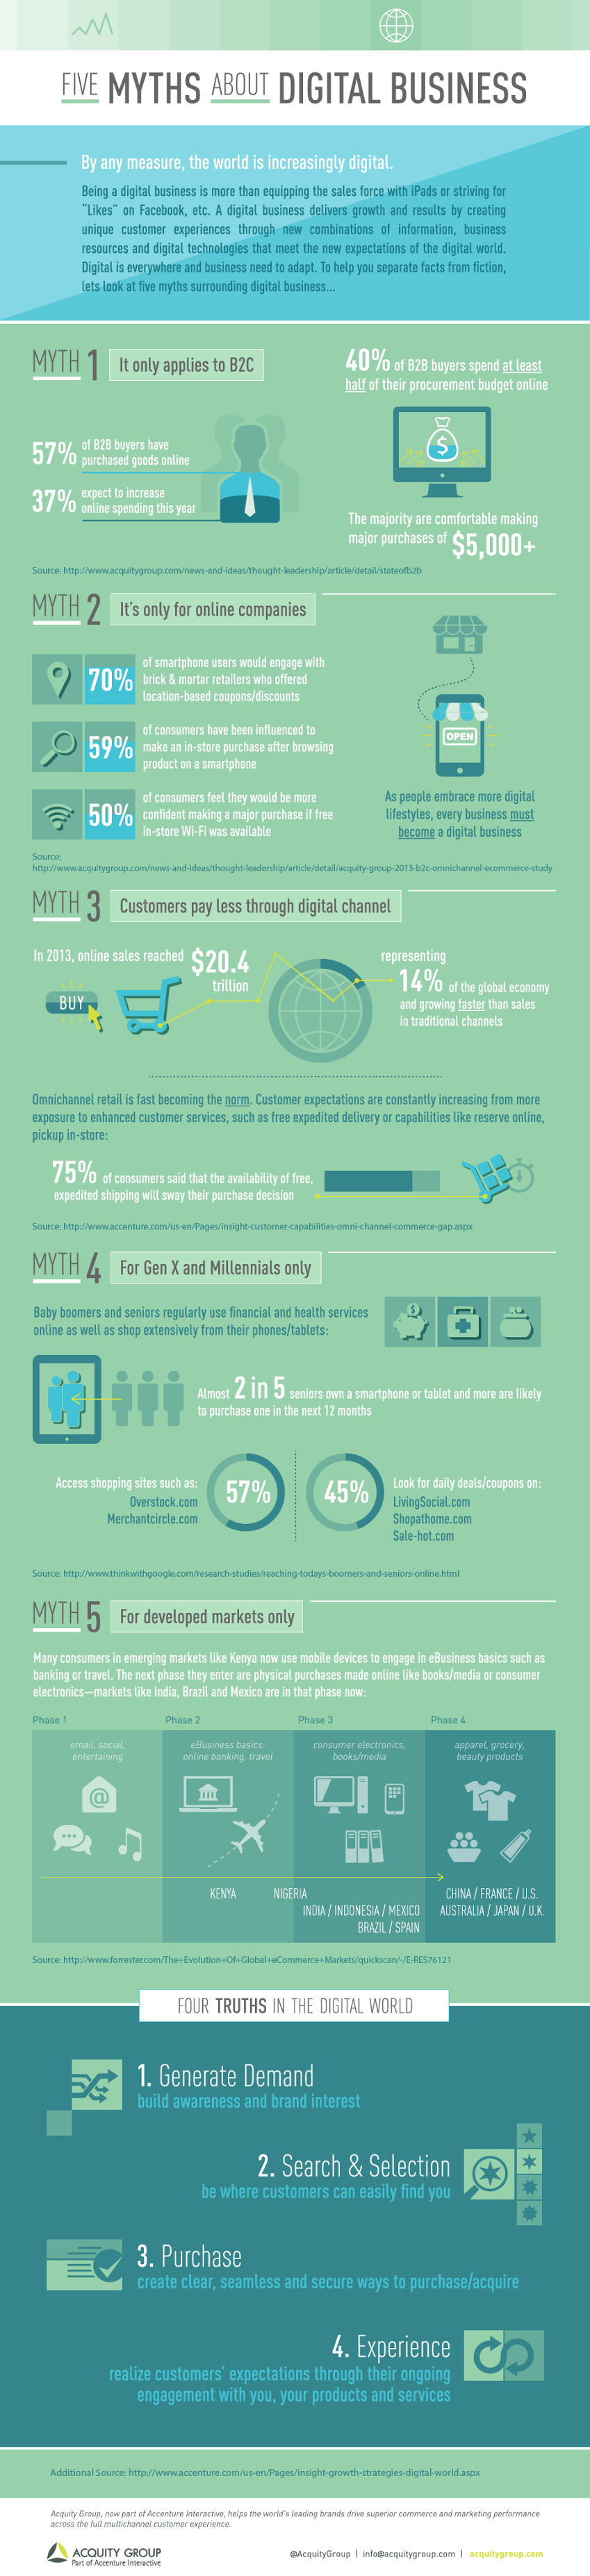 5 Myths About Digital #Business - #infographic